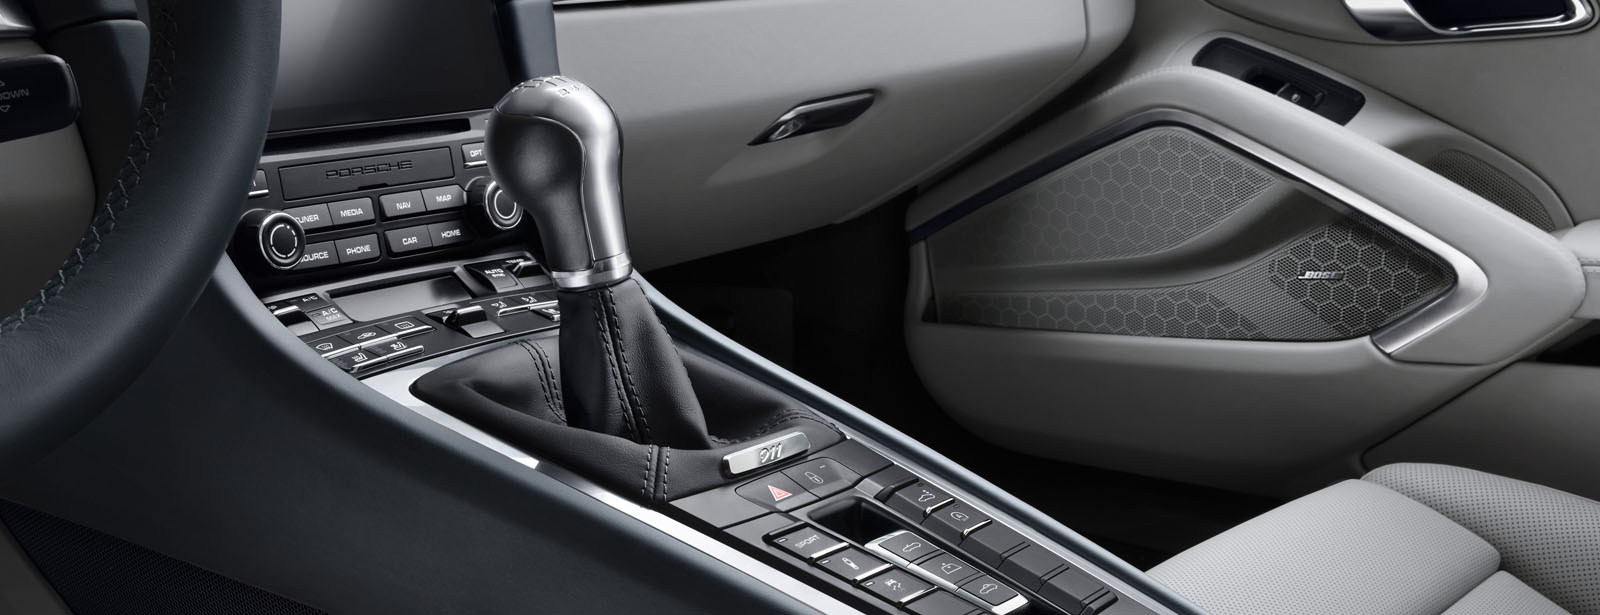 Porsche 911 7-speed manual transmission